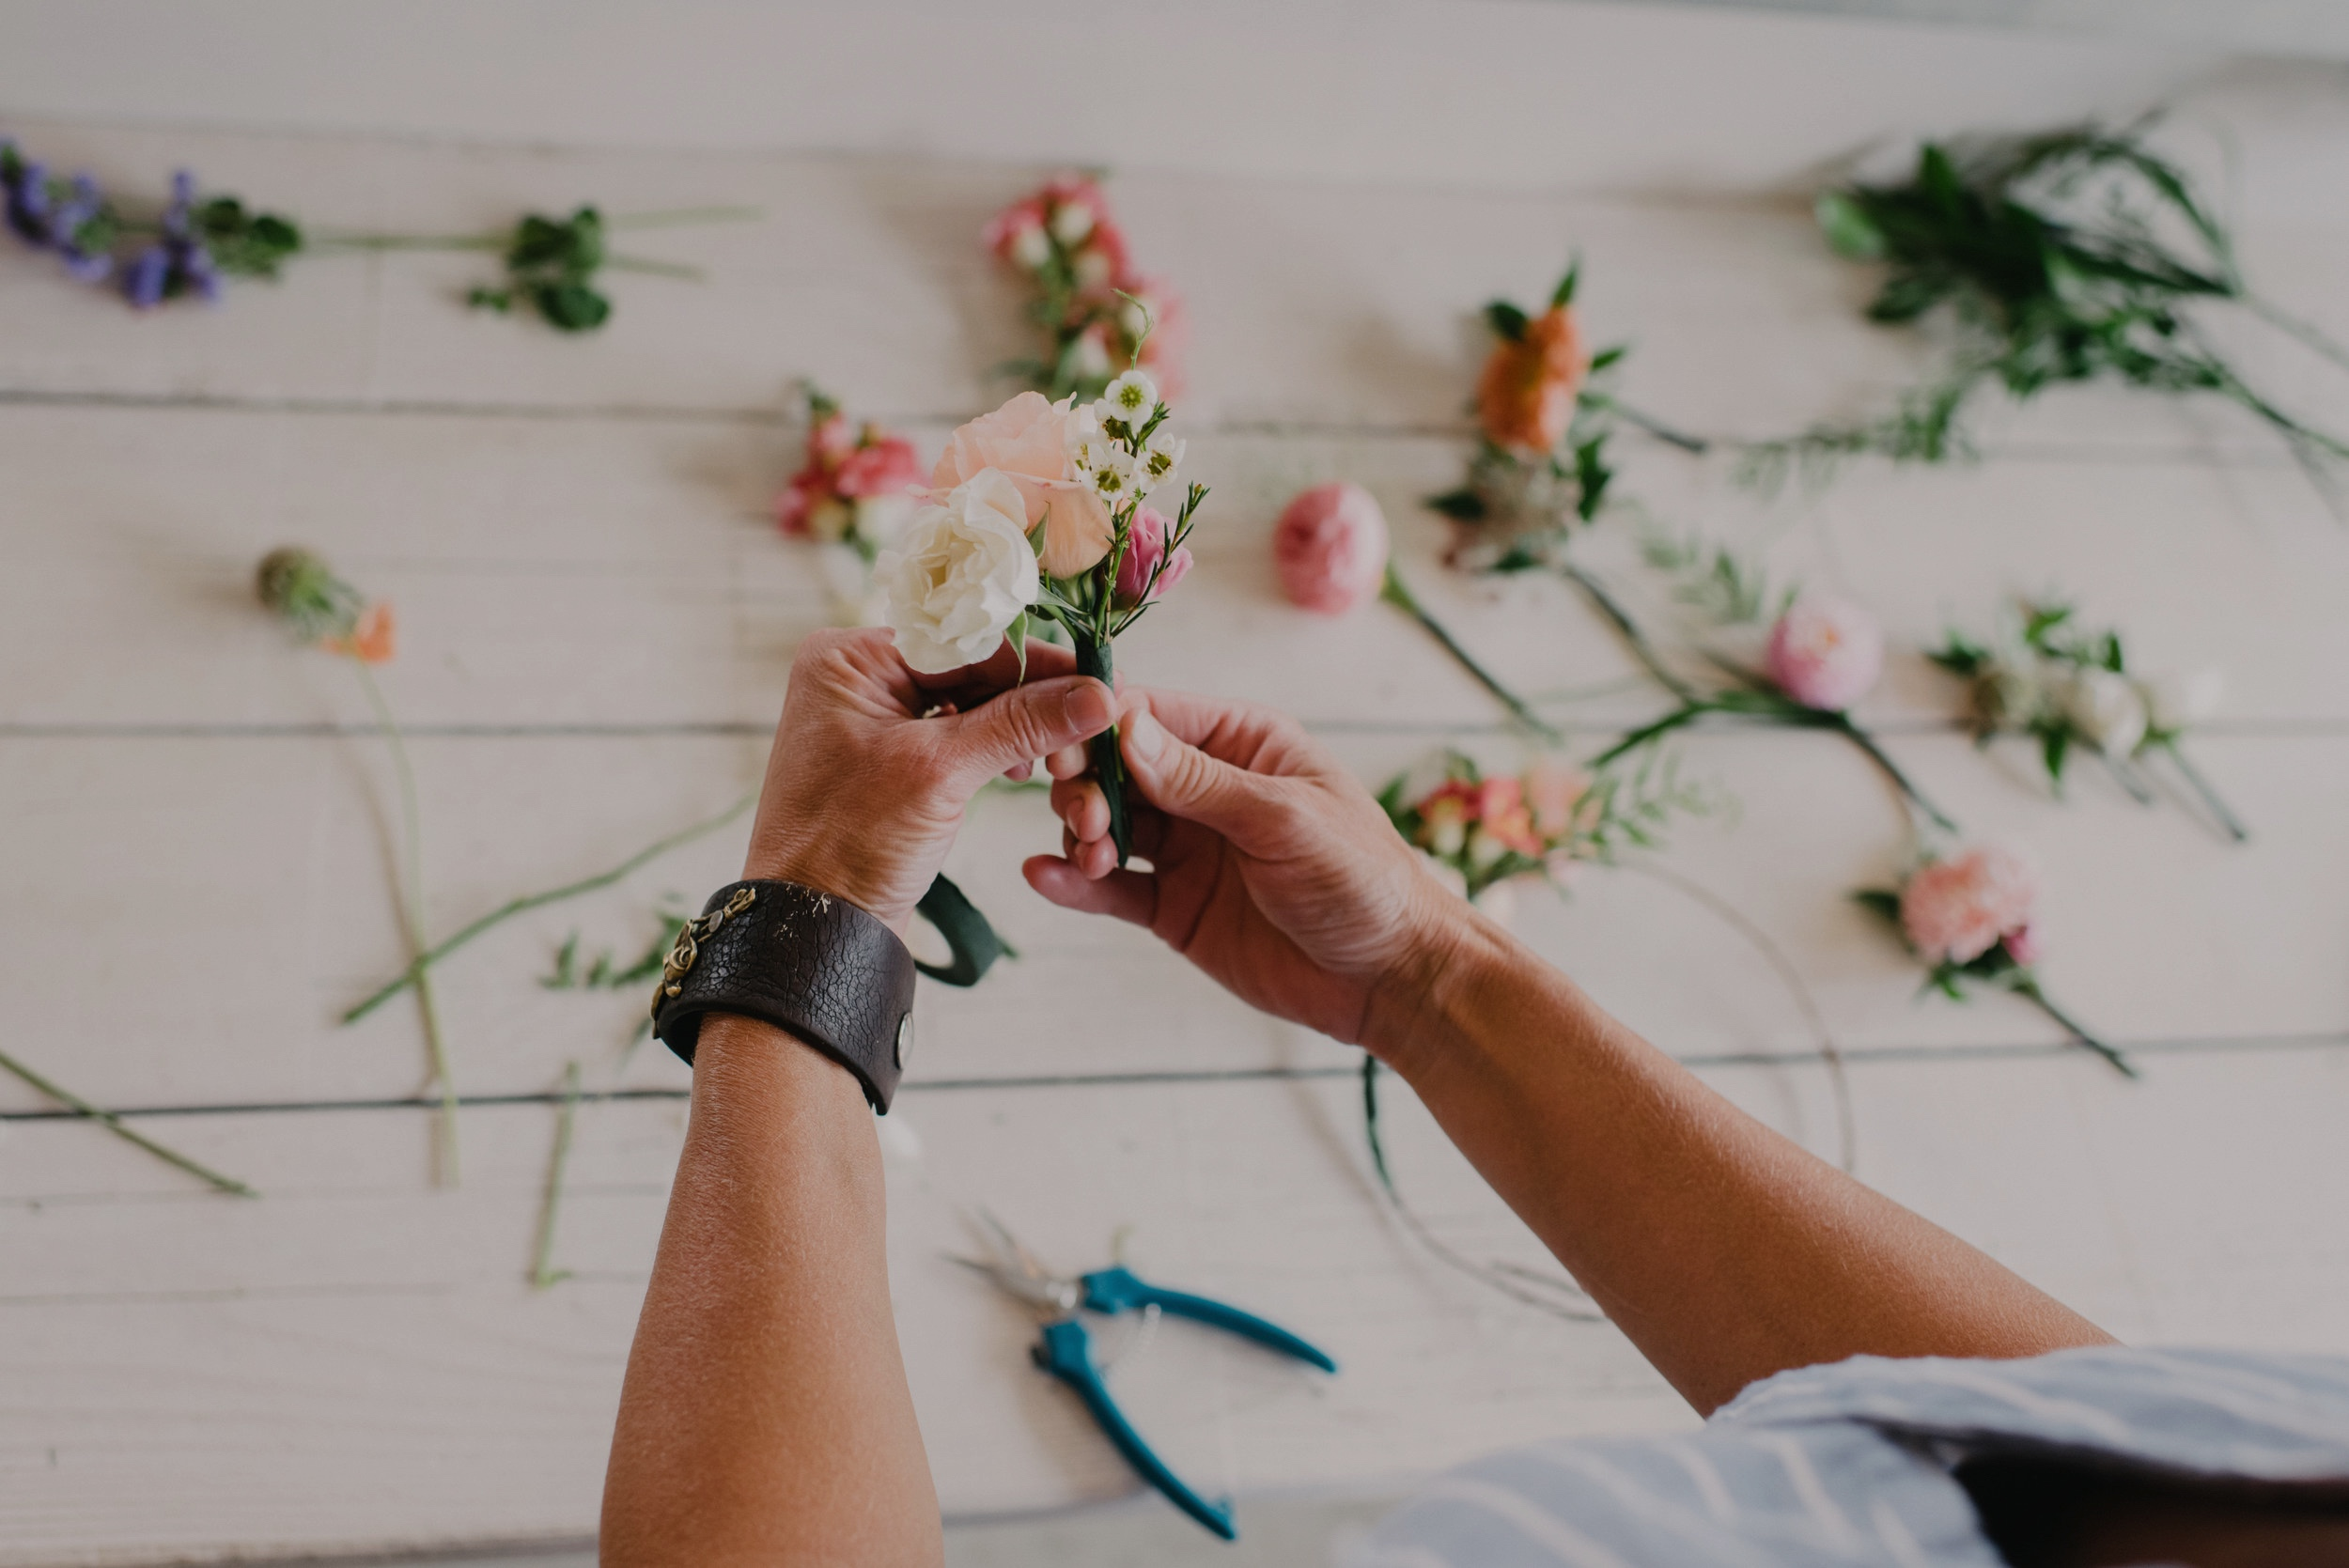 Schedule A Workshop - Be a hands-on floral artist as our farm studio!